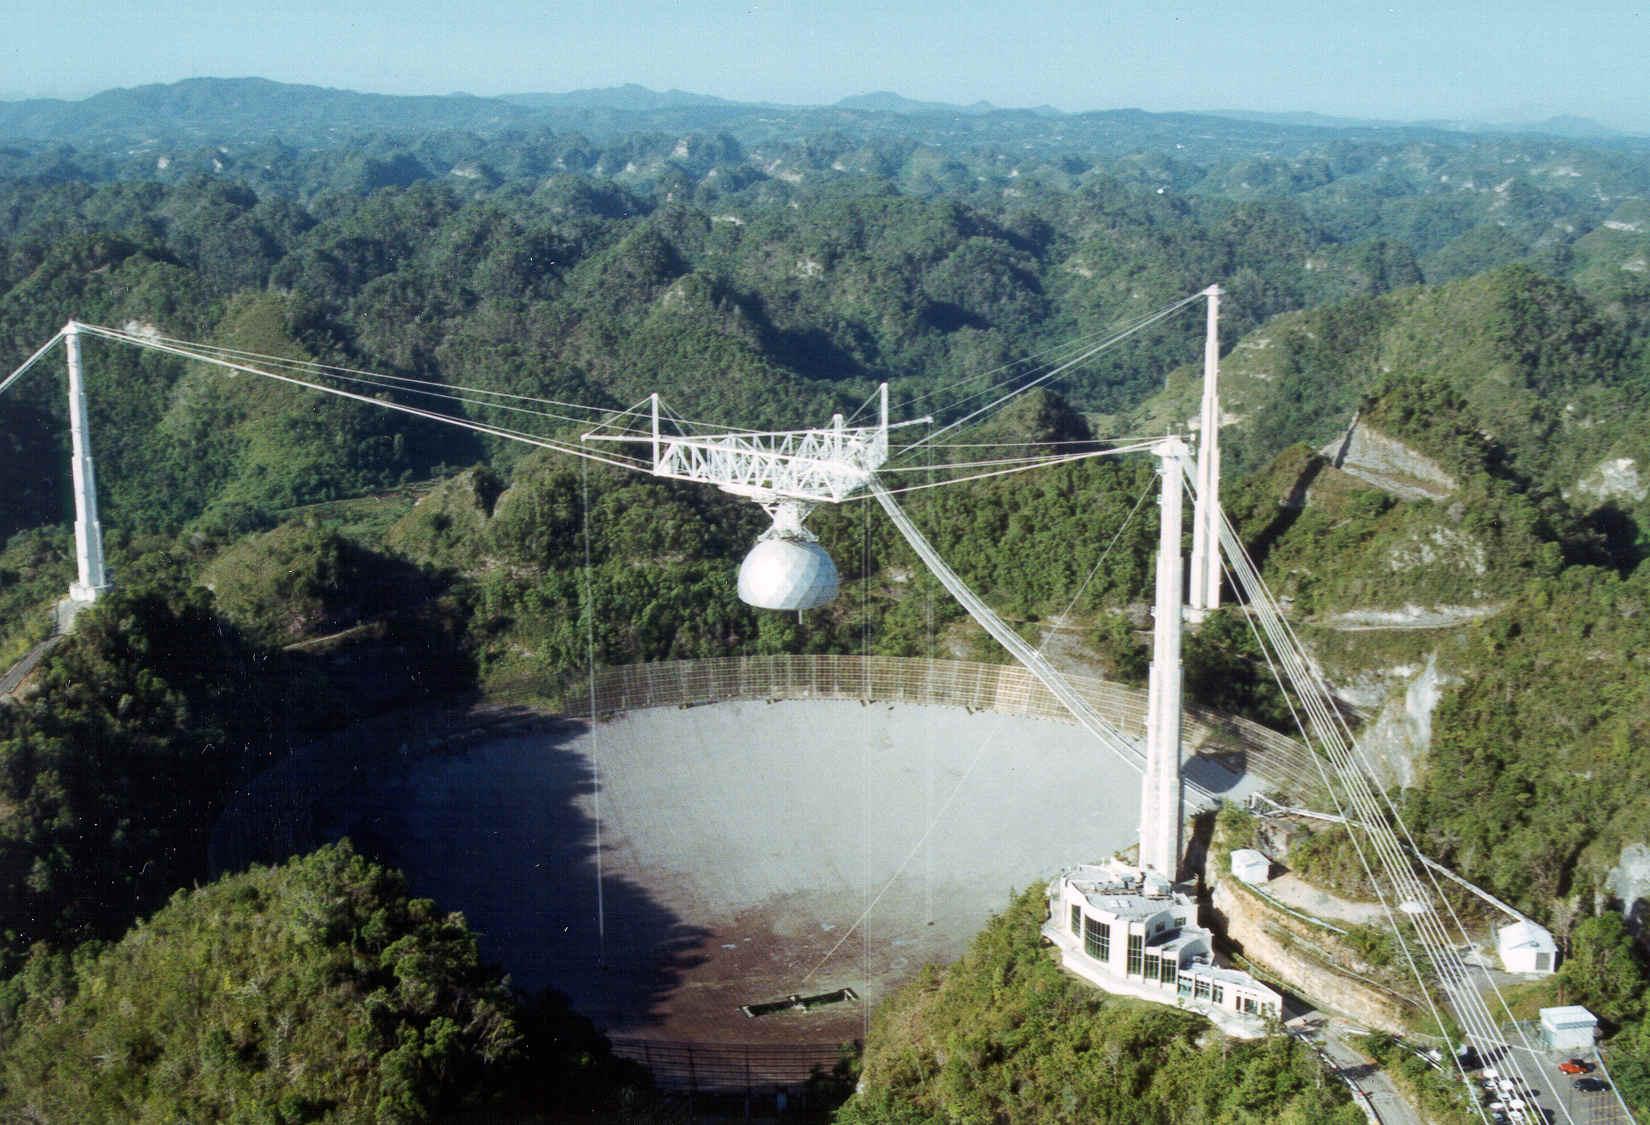 The Arecibo Observatory in Puerto Rico is one of the best tools for studying and categorizing known near-Earth asteroids. A recent NASA grant allows up to 800 hours of observation per year purely for observing asteroids. Credit: University of Central Florida.